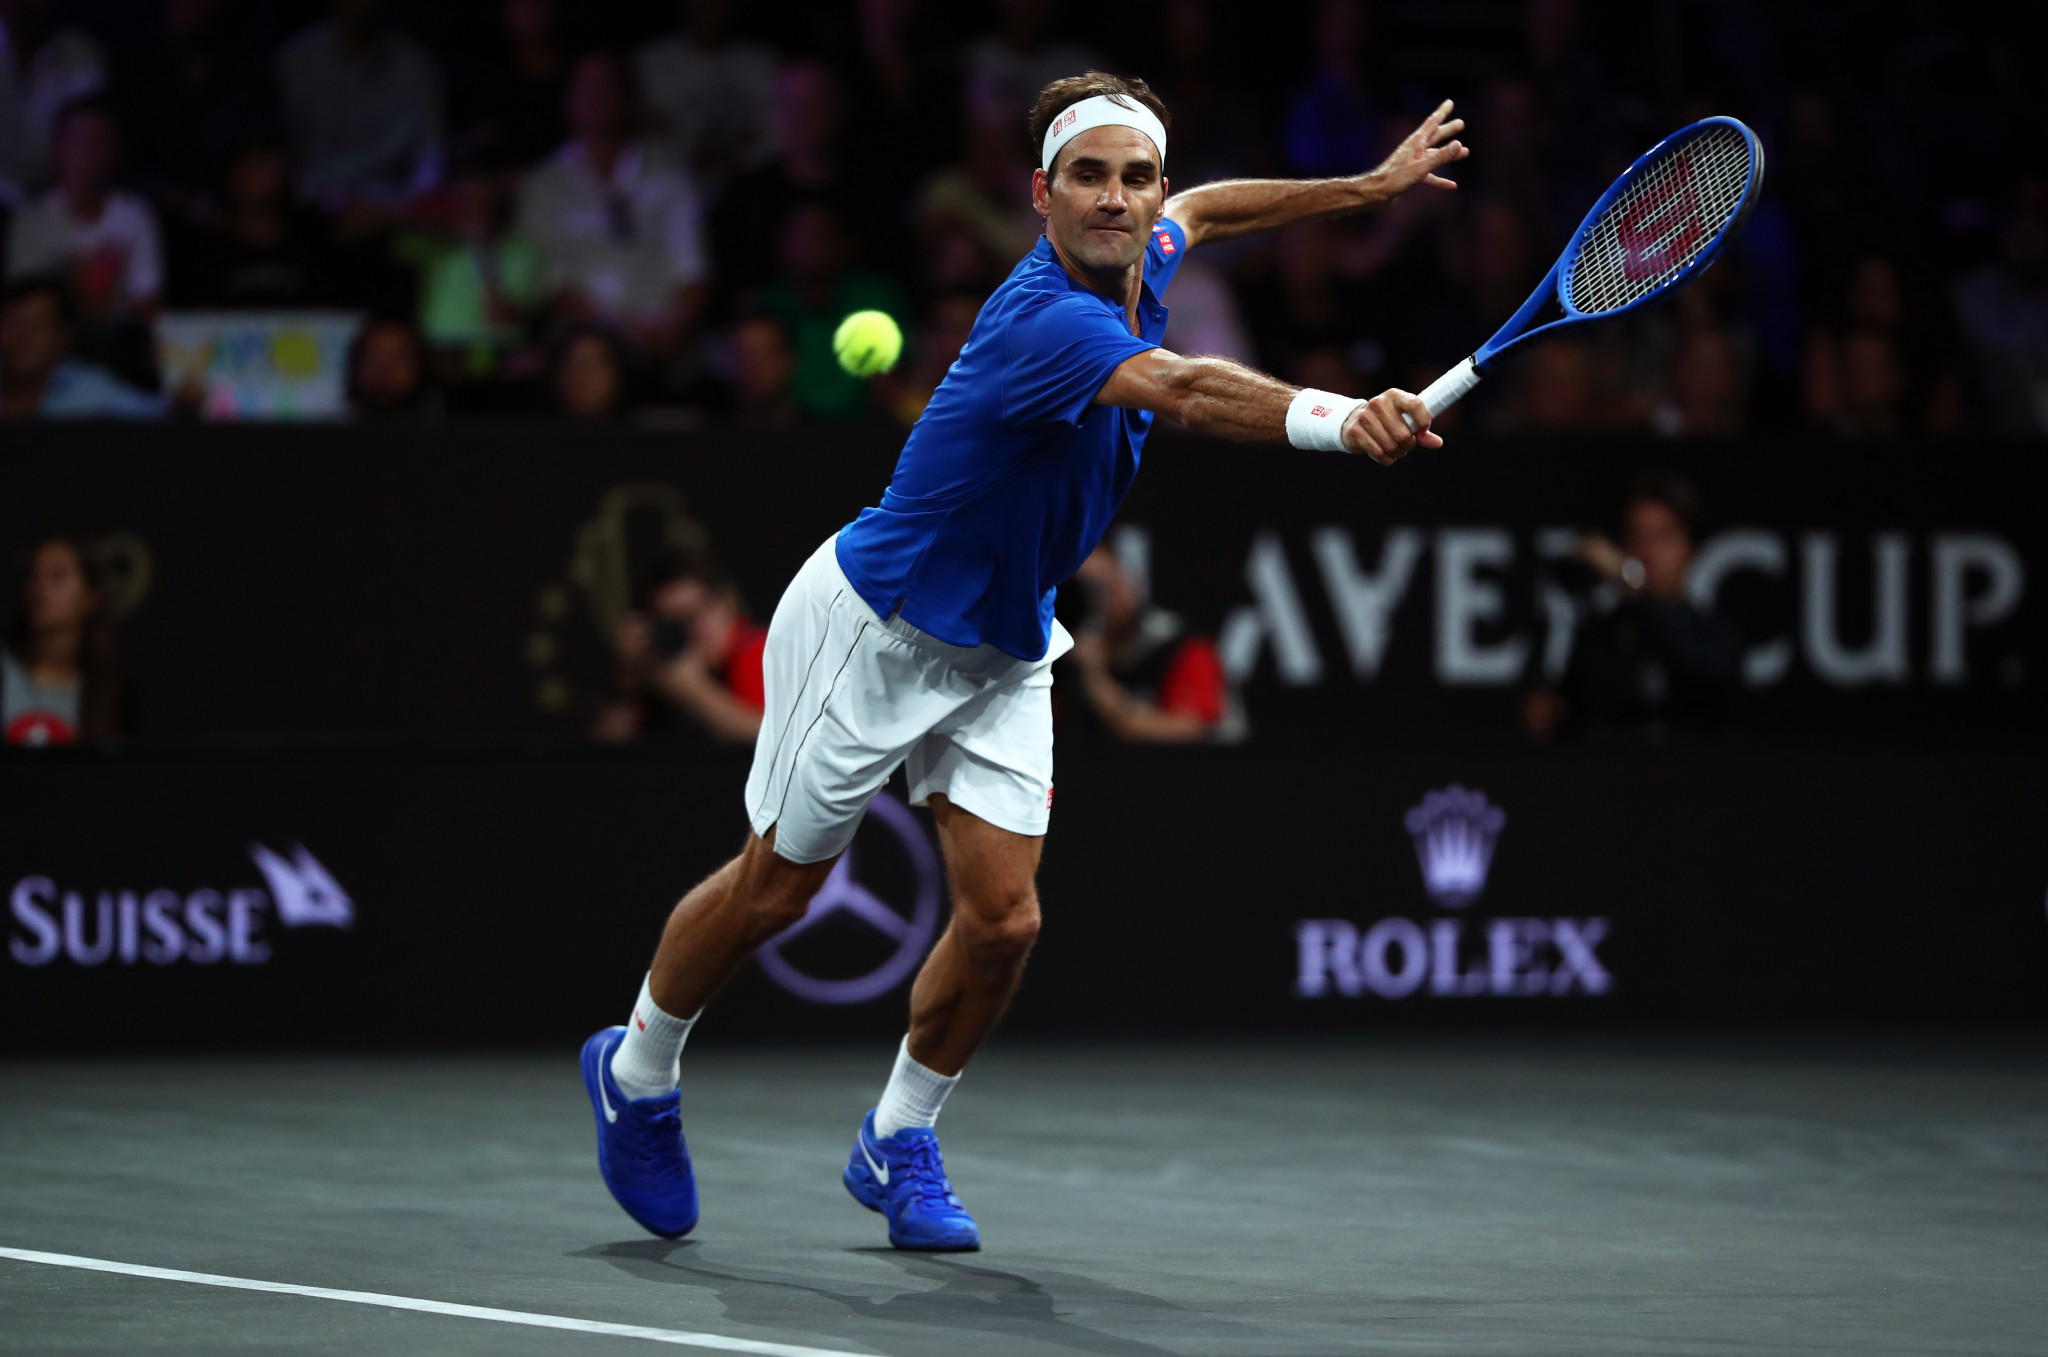 Europe take two-point lead into final day of Laver Cup